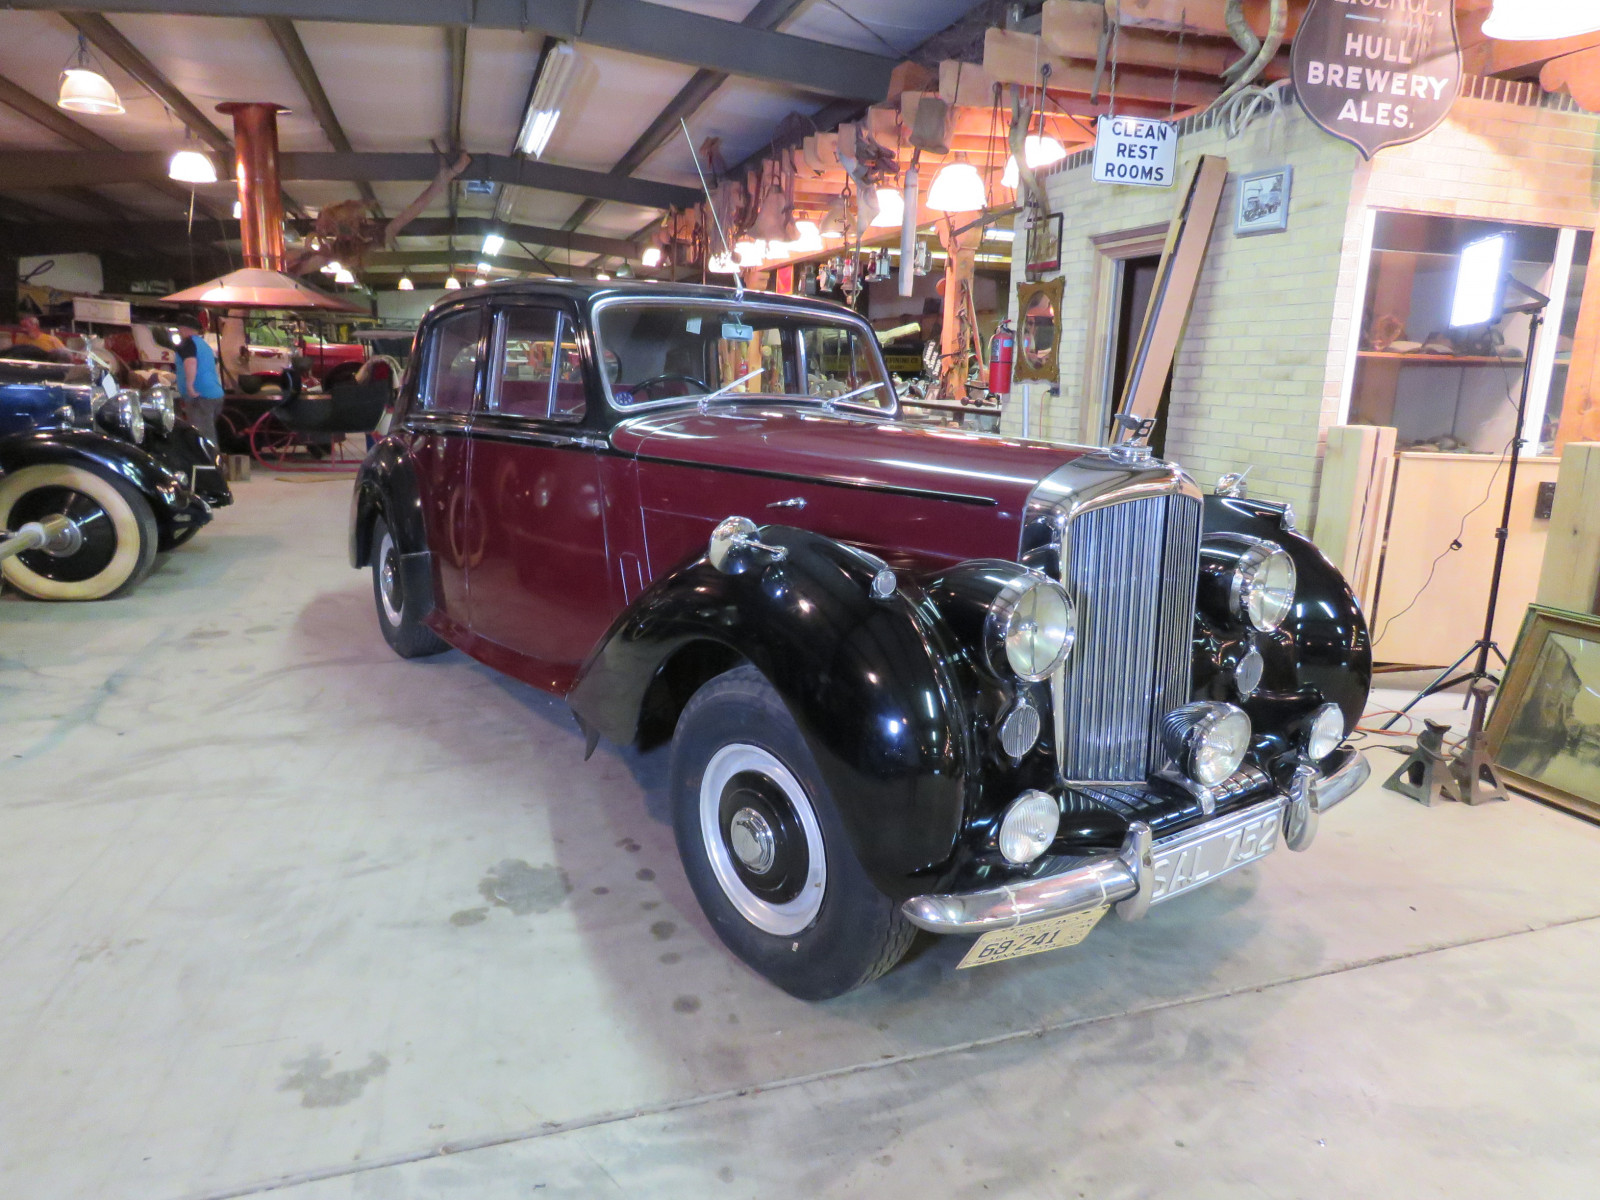 1955 Bentley R Type 4dr Sedan - Image 3